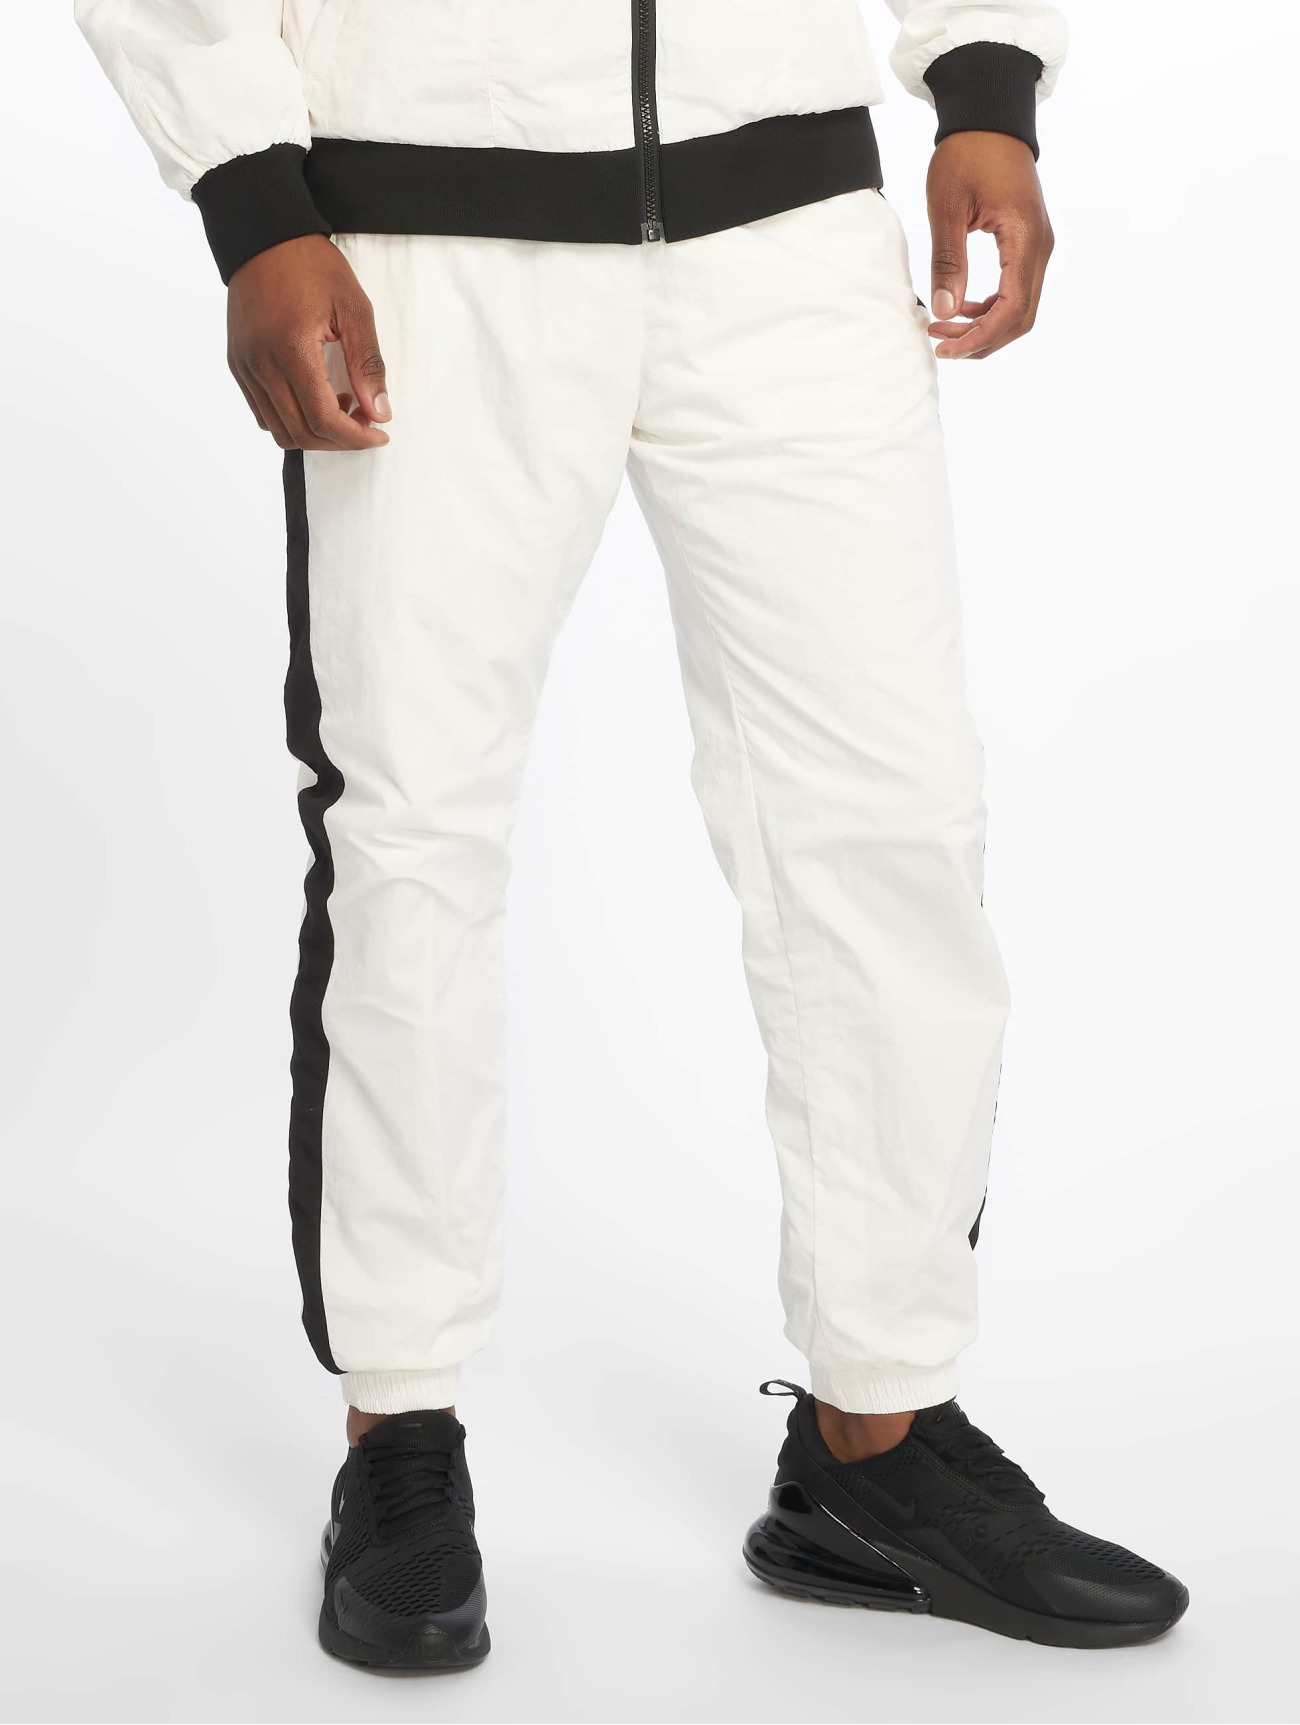 Urban Classics  Side Striped Crinkle  blanc Homme Jogging  636559 Homme Pantalons & Shorts